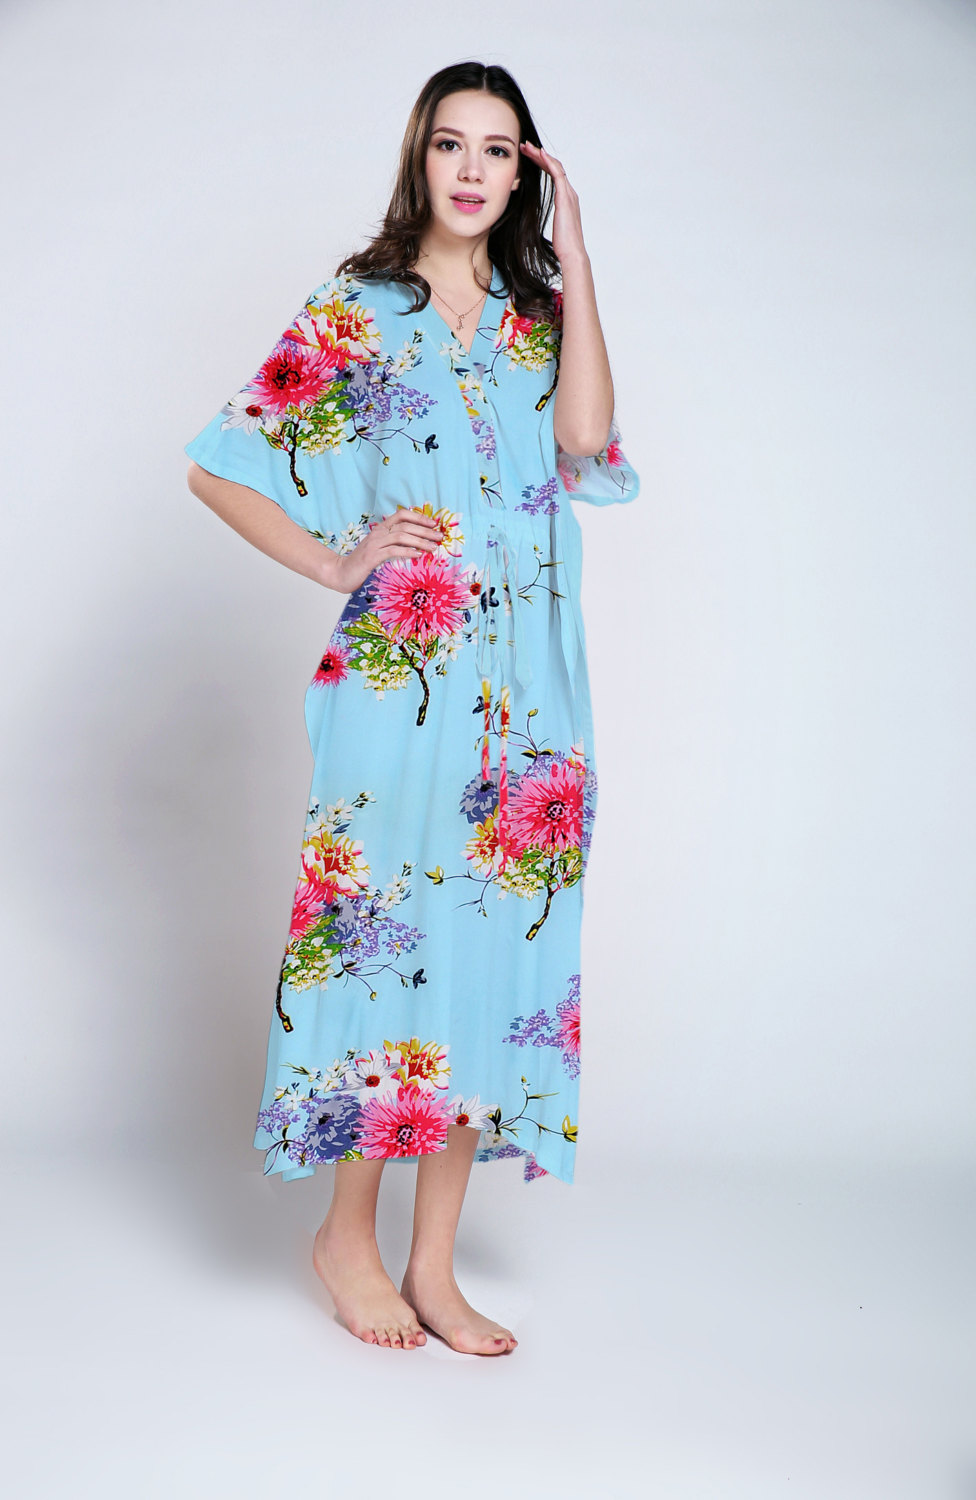 The Cutest Maternity Hospital Gowns to Shop – careyfashion.com